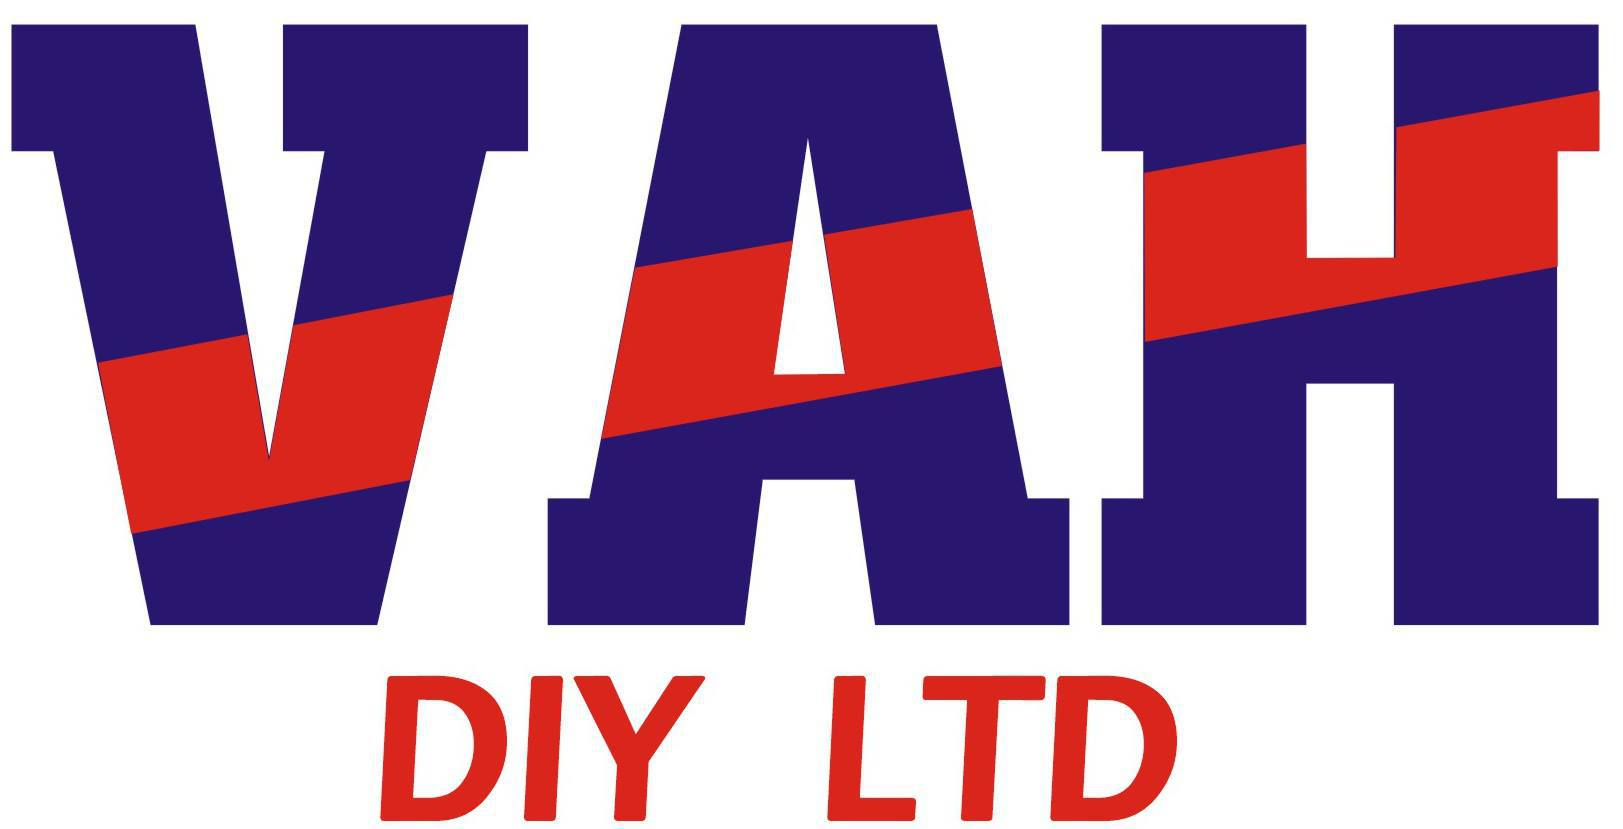 Vah Diy Supplies Ltd logo